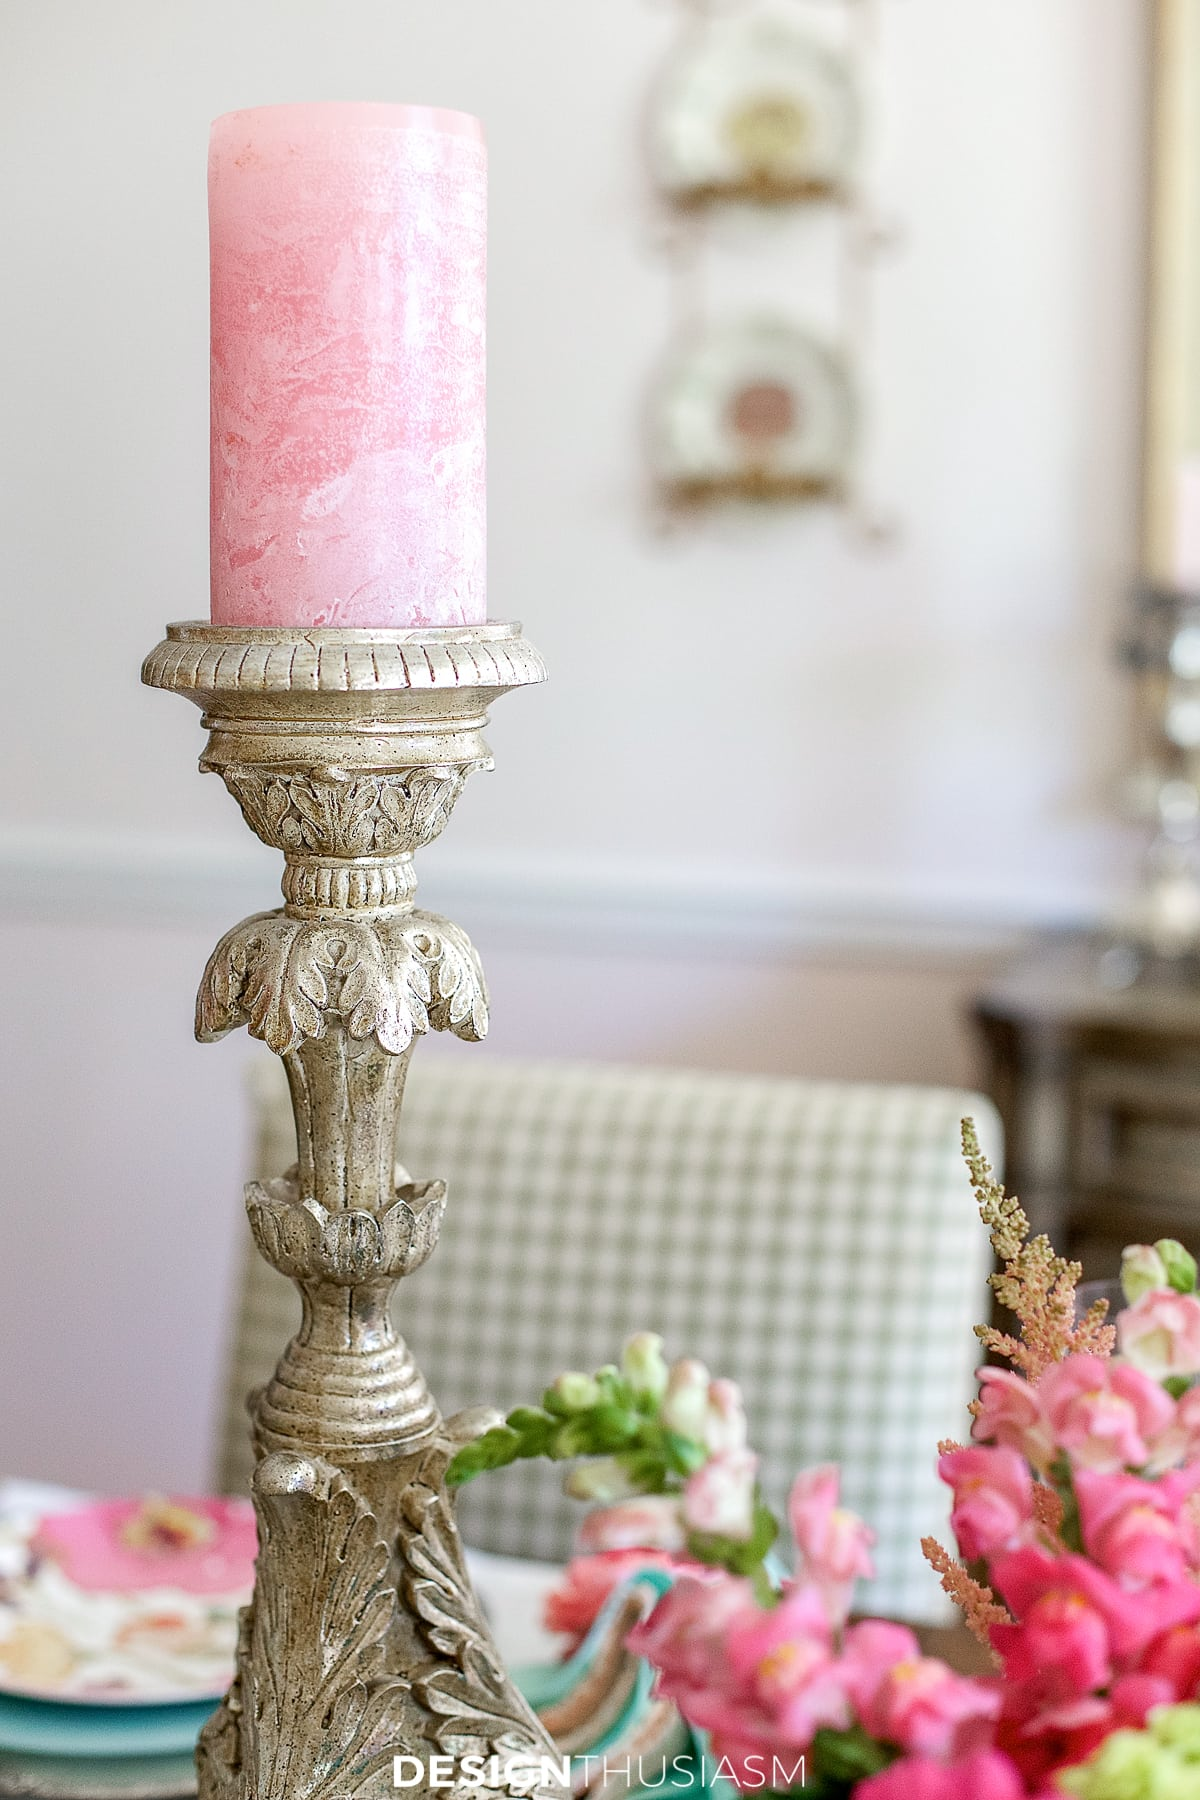 candlestick with pink candle